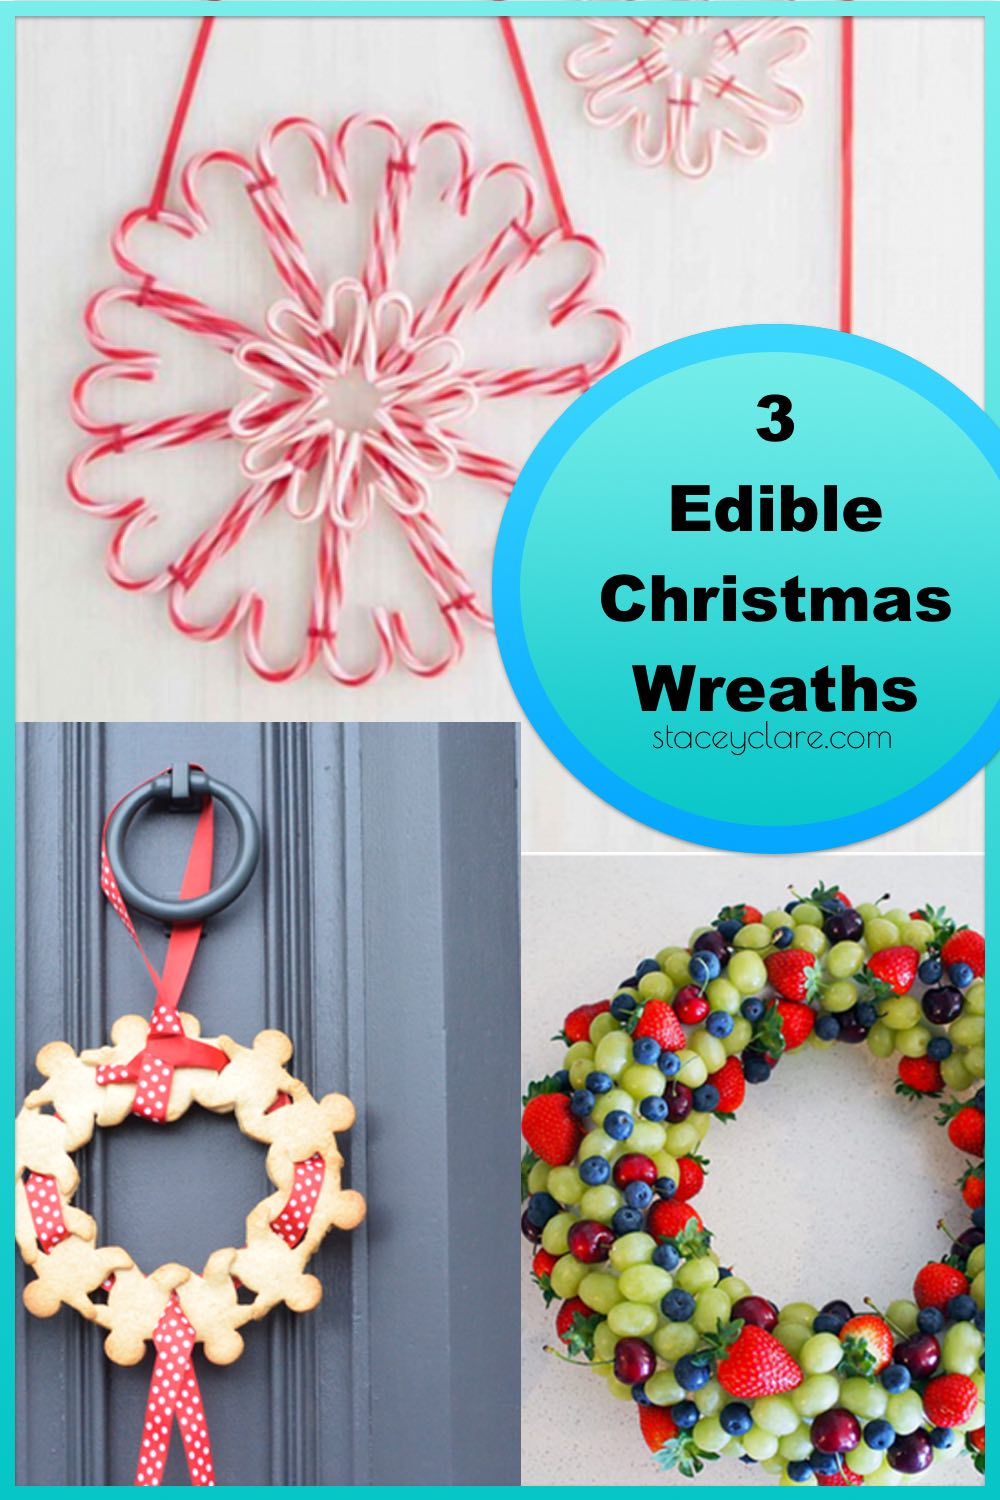 3 Edible Food Wreaths You've Got To Make This Christmas